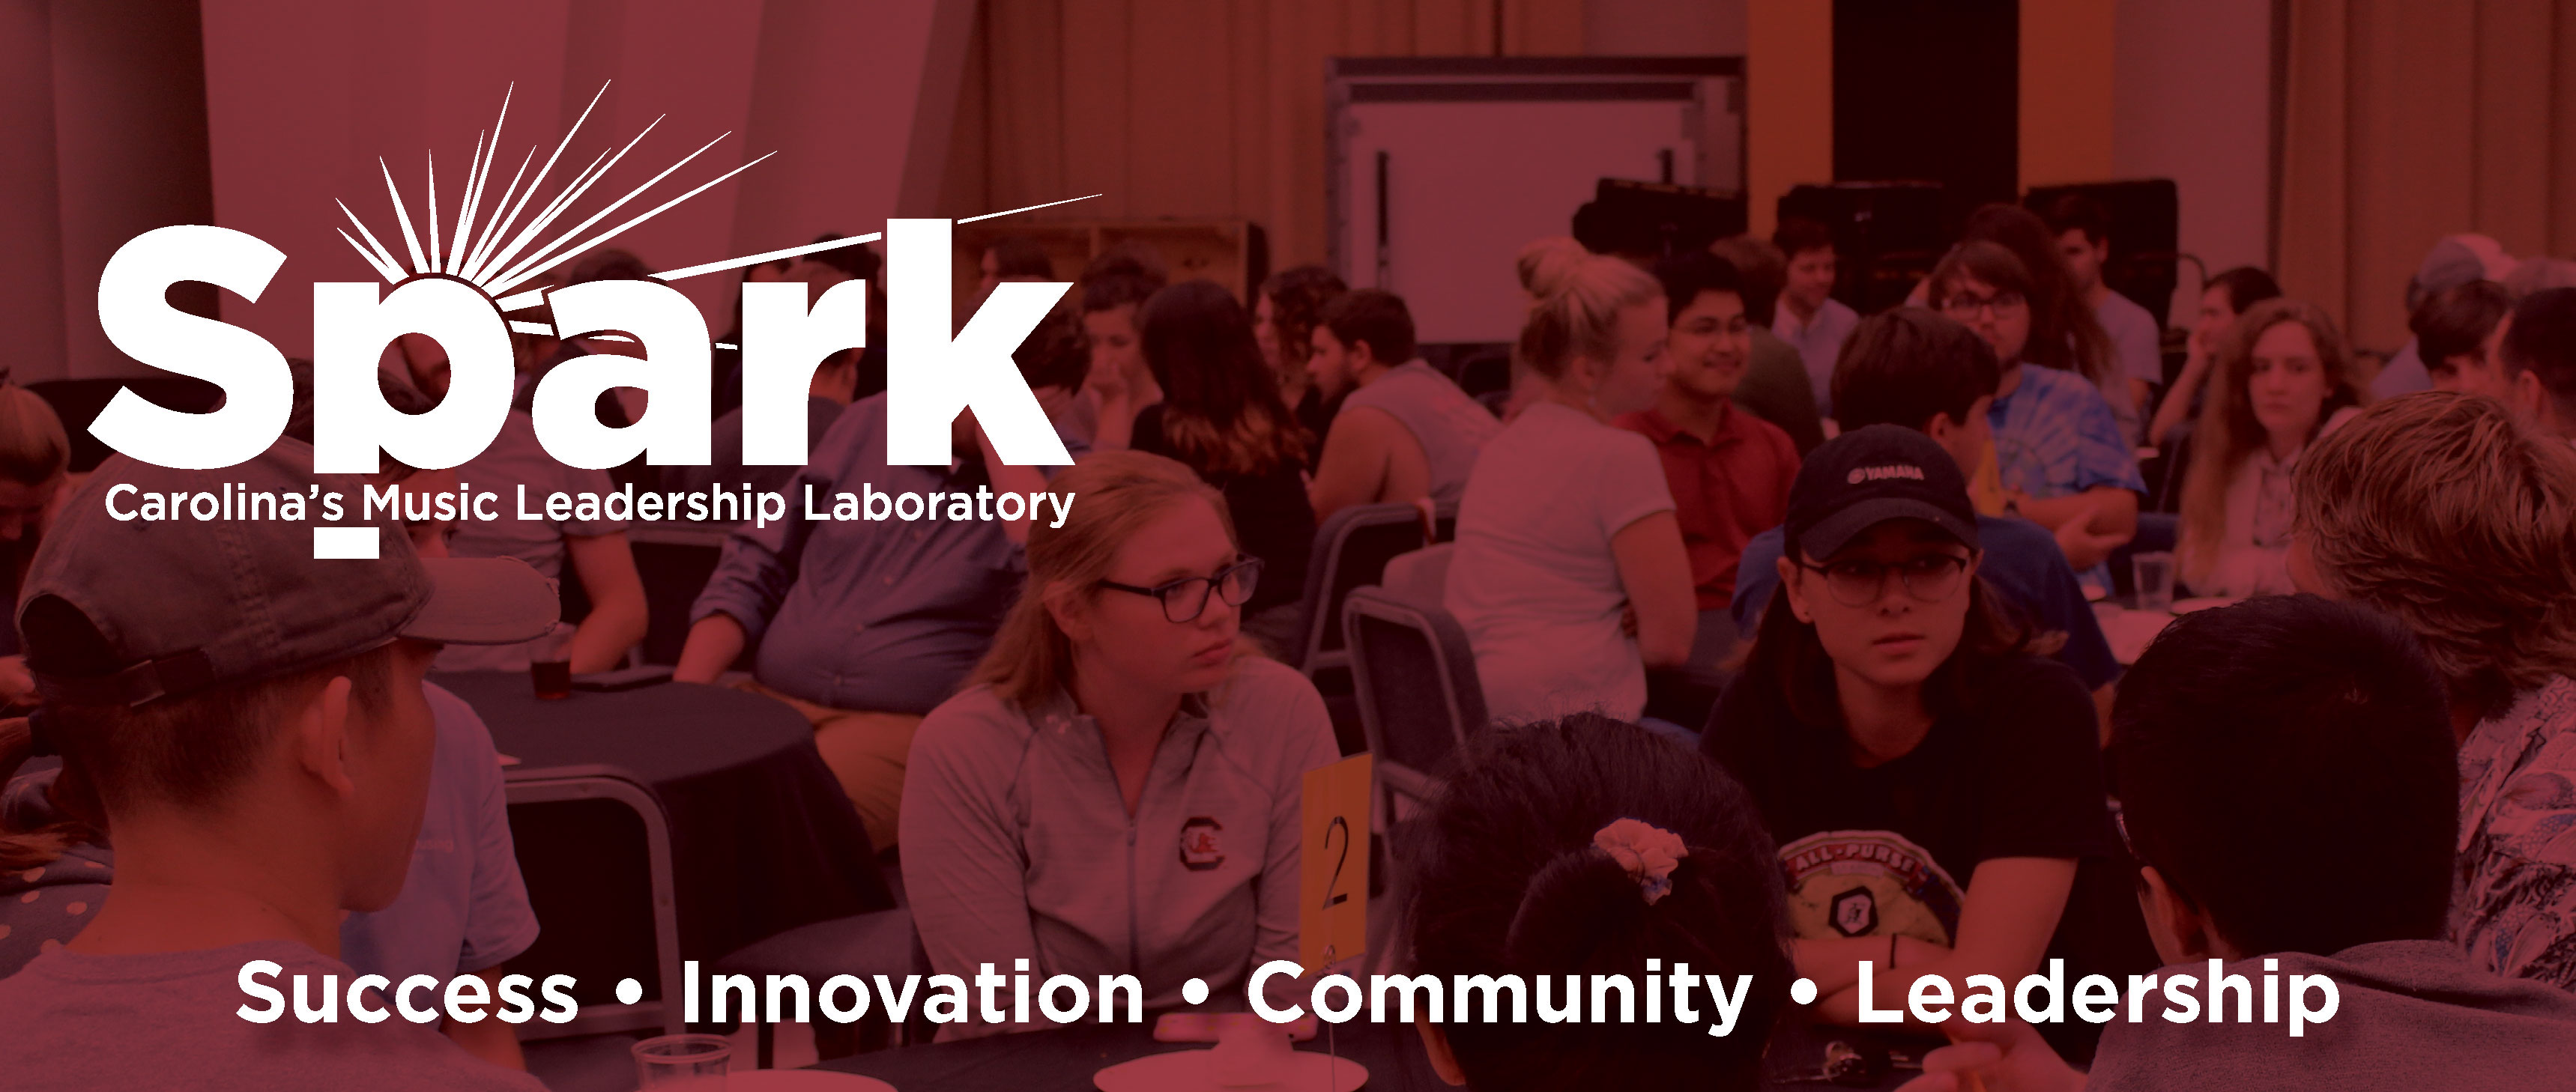 Spark-Carolina's Music Leadership Laboratory